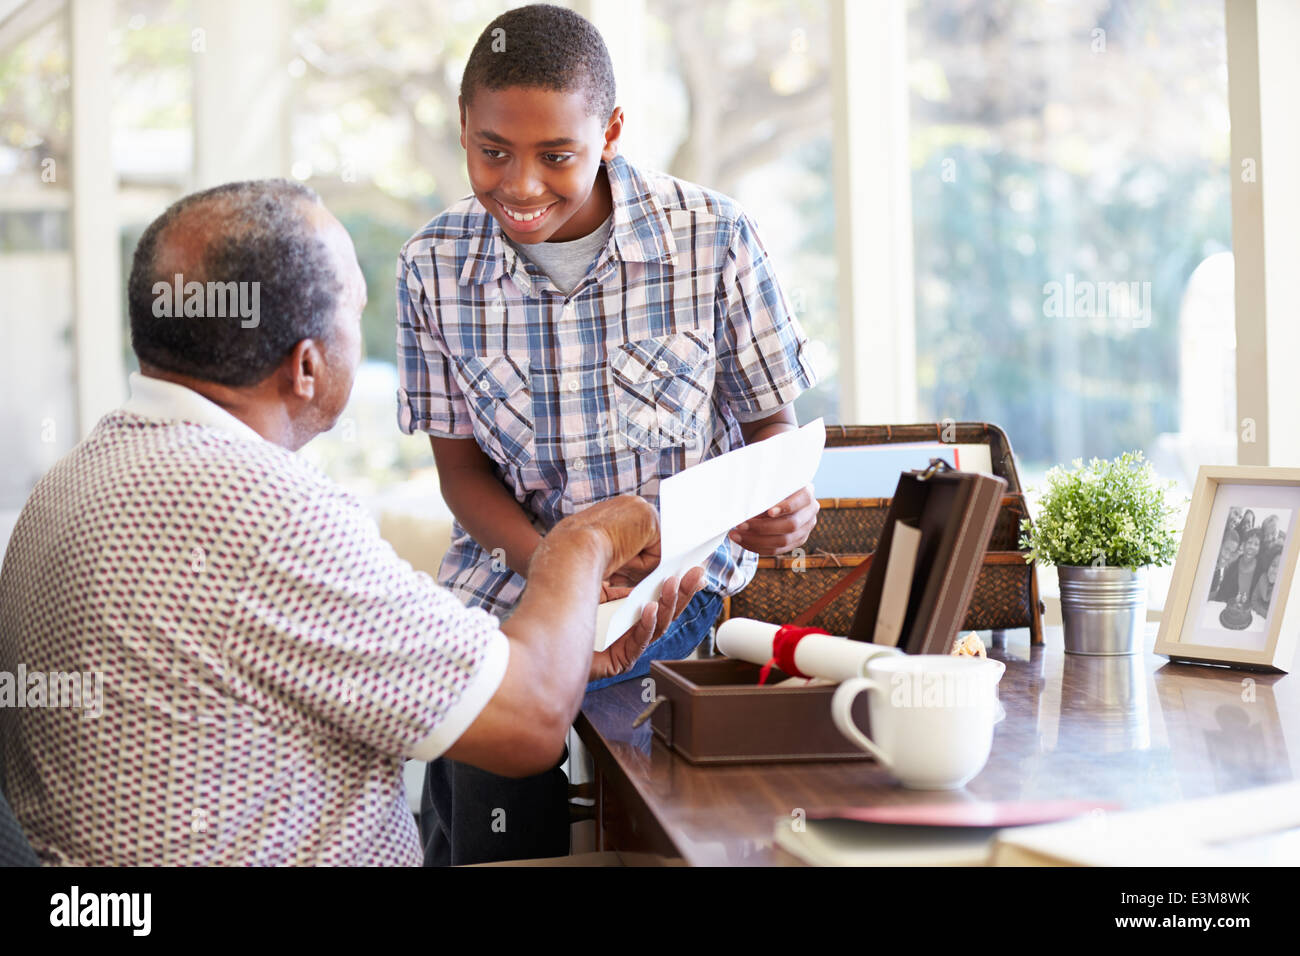 Grandfather Showing Document To Grandson - Stock Image